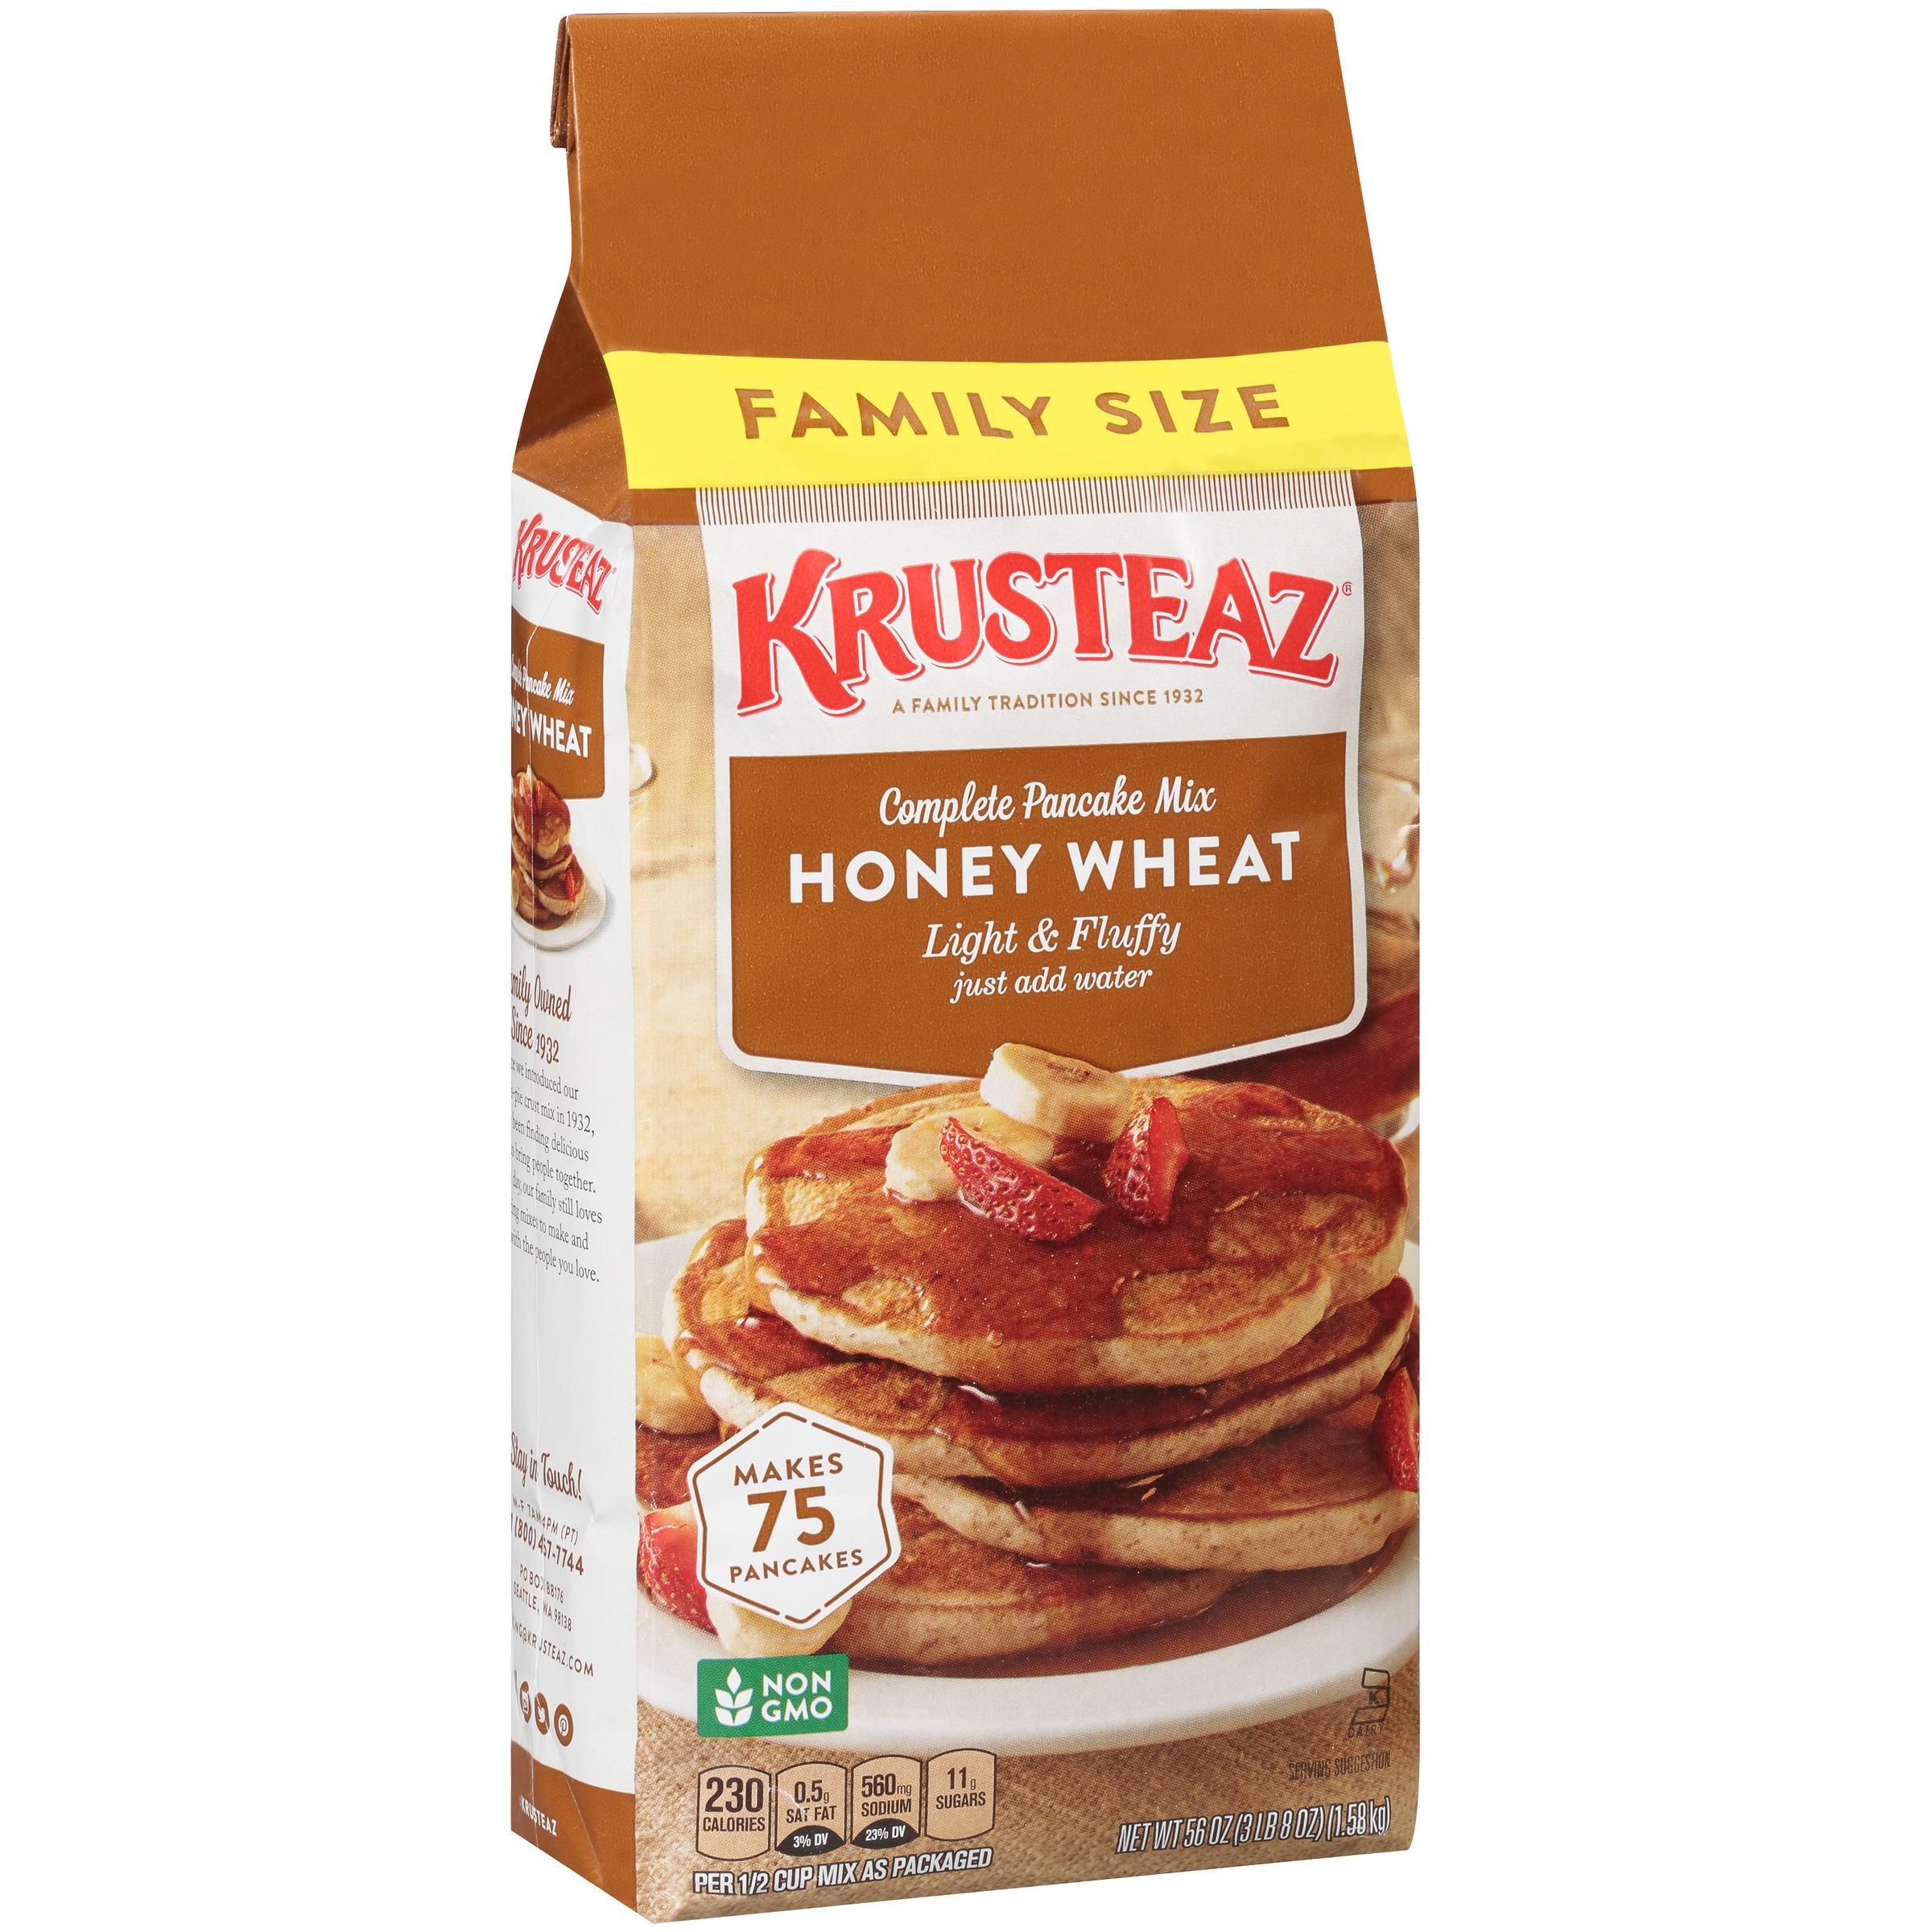 (2 pack) Krusteaz Light & Fluffy Honey Wheat Complete Pancake Mix, 56 oz. Bag